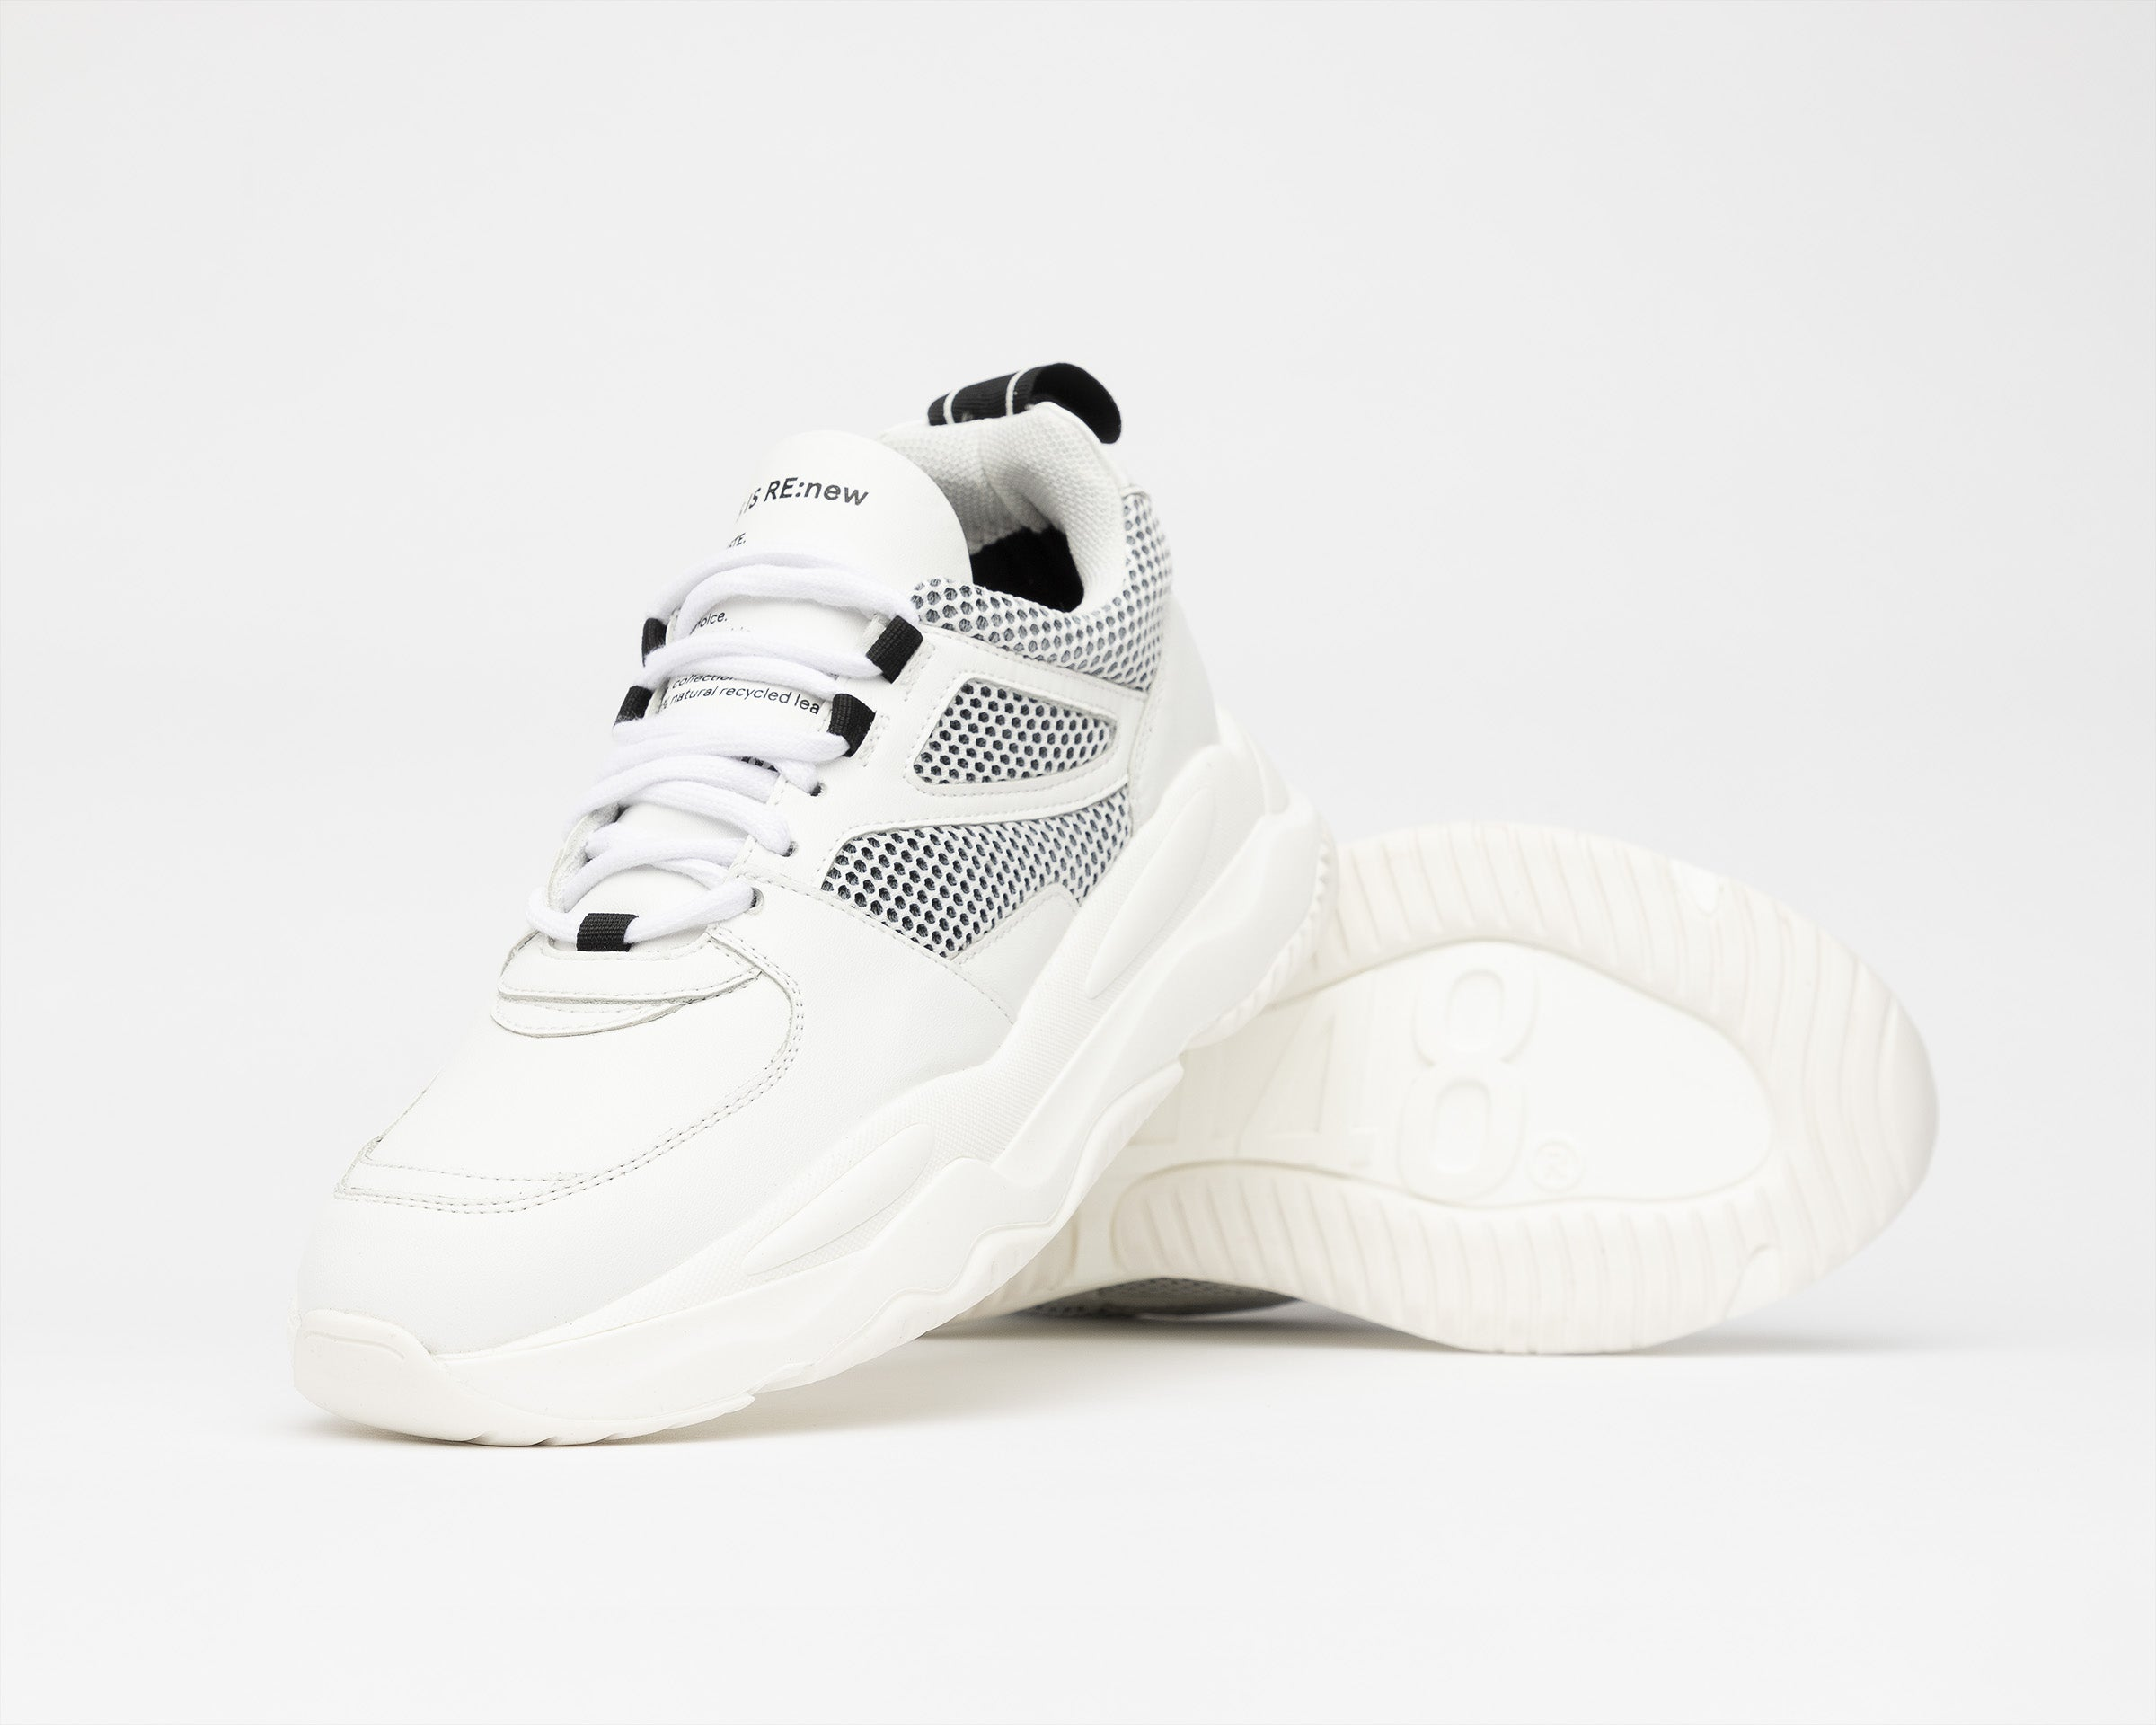 Luke Chunky Sneaker in WhiteR Recycled Leather - Detail 1